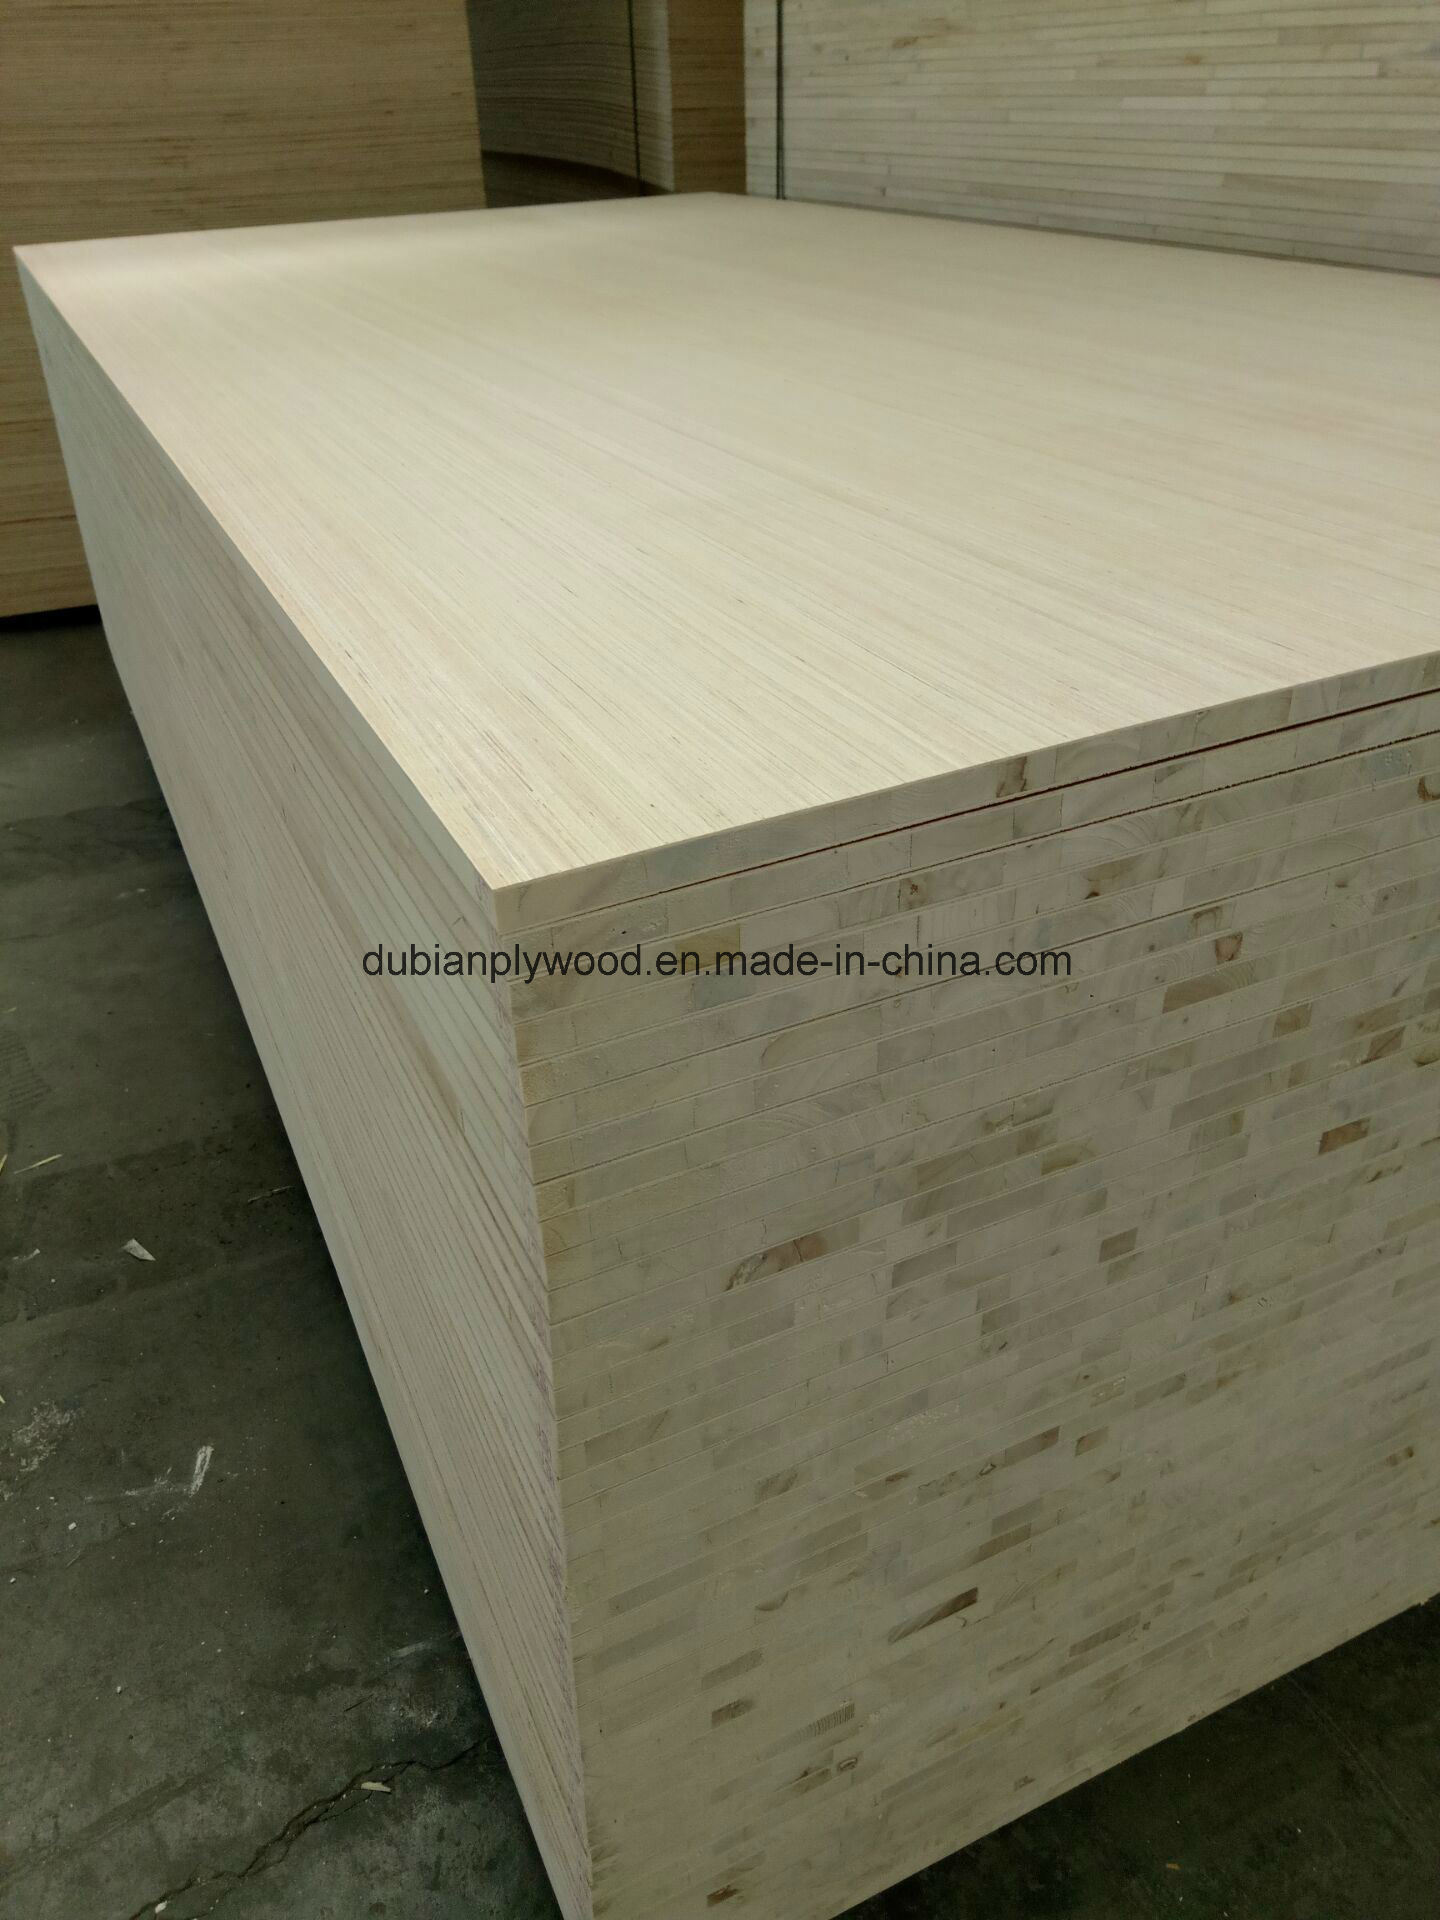 Melamine Faced Block Board for Furniture and Decorative Usage